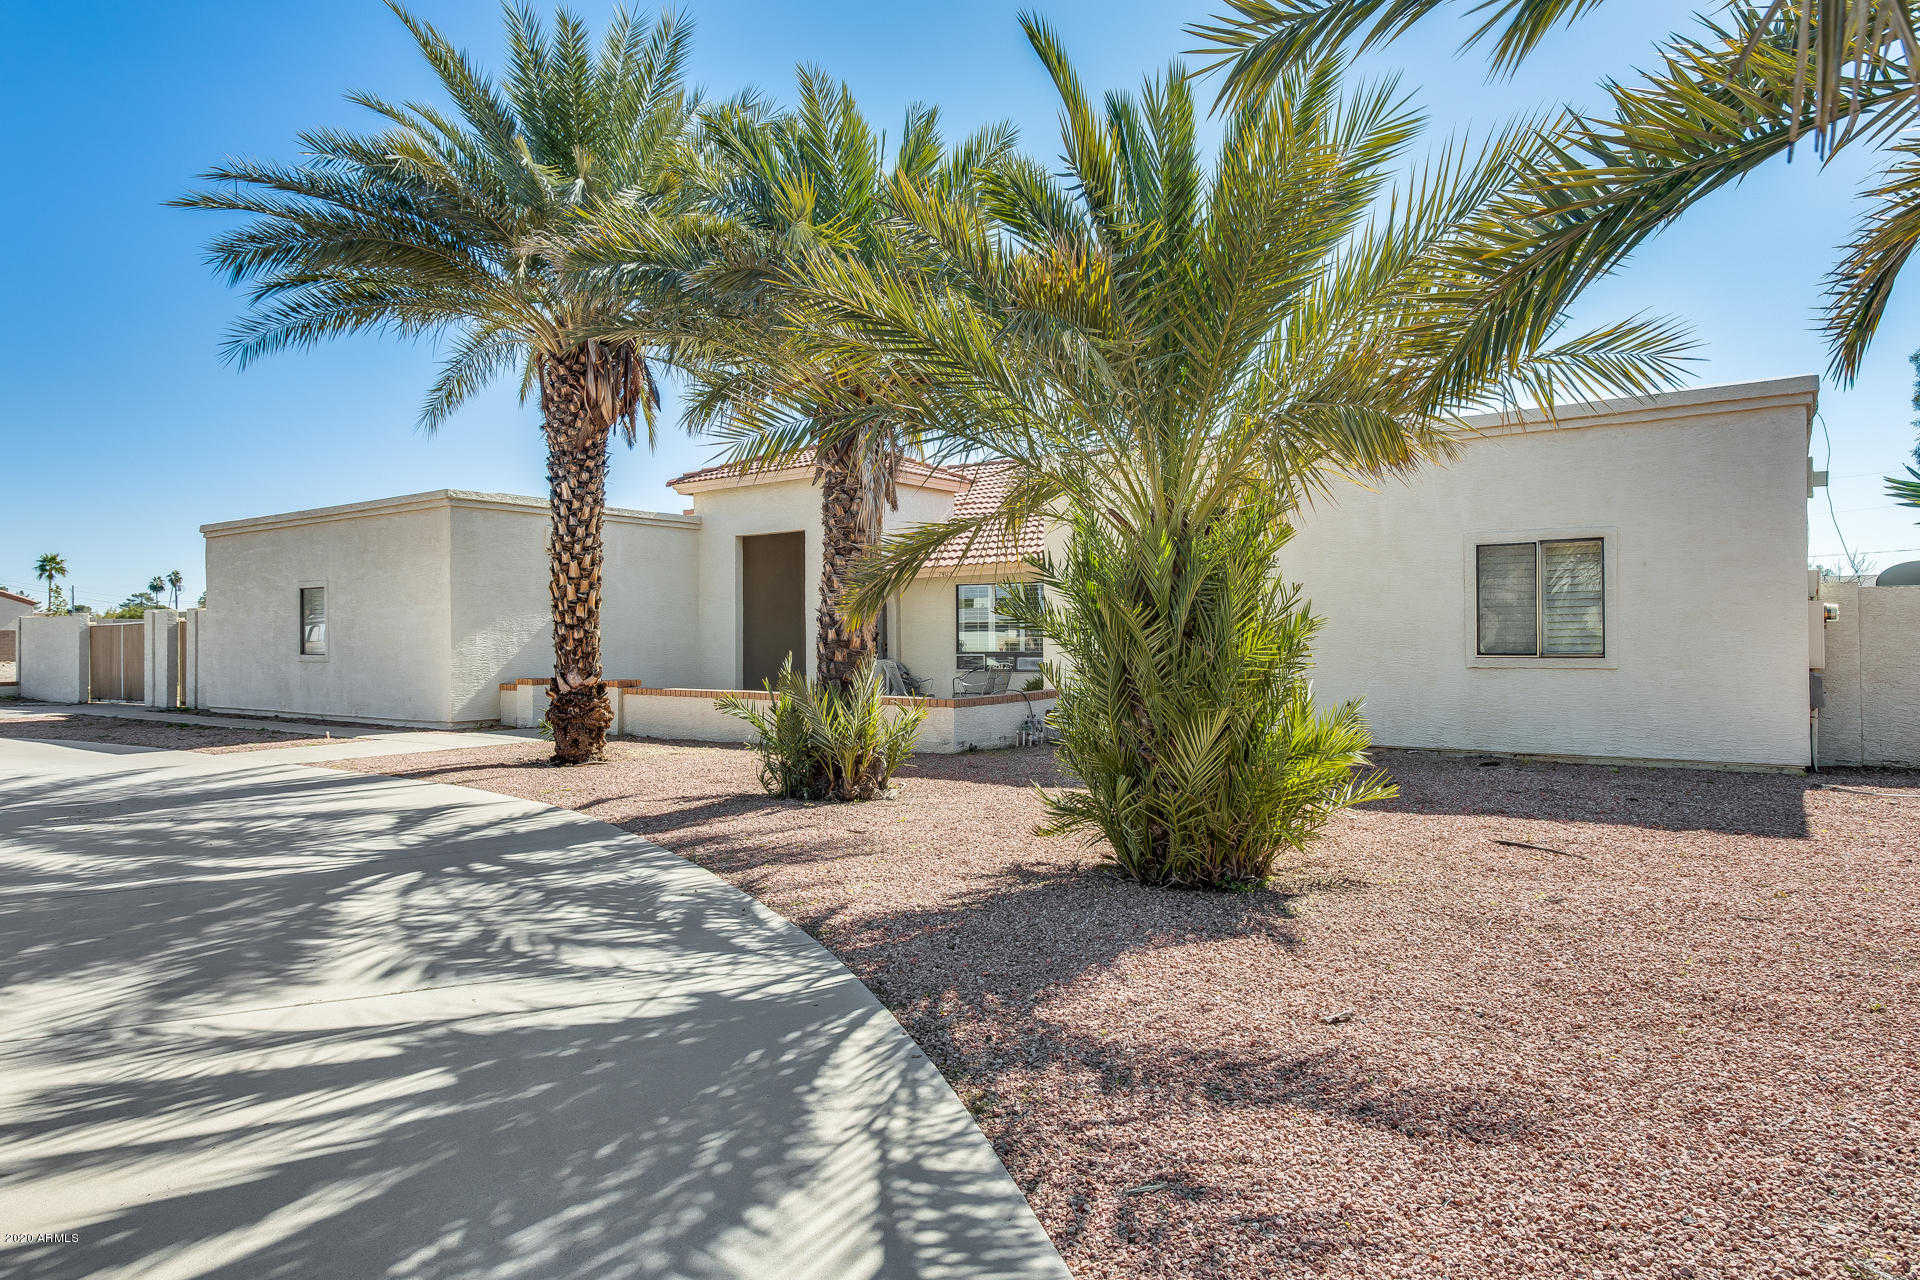 $530,000 - 4Br/3Ba - Home for Sale in Secluded Acres, Glendale